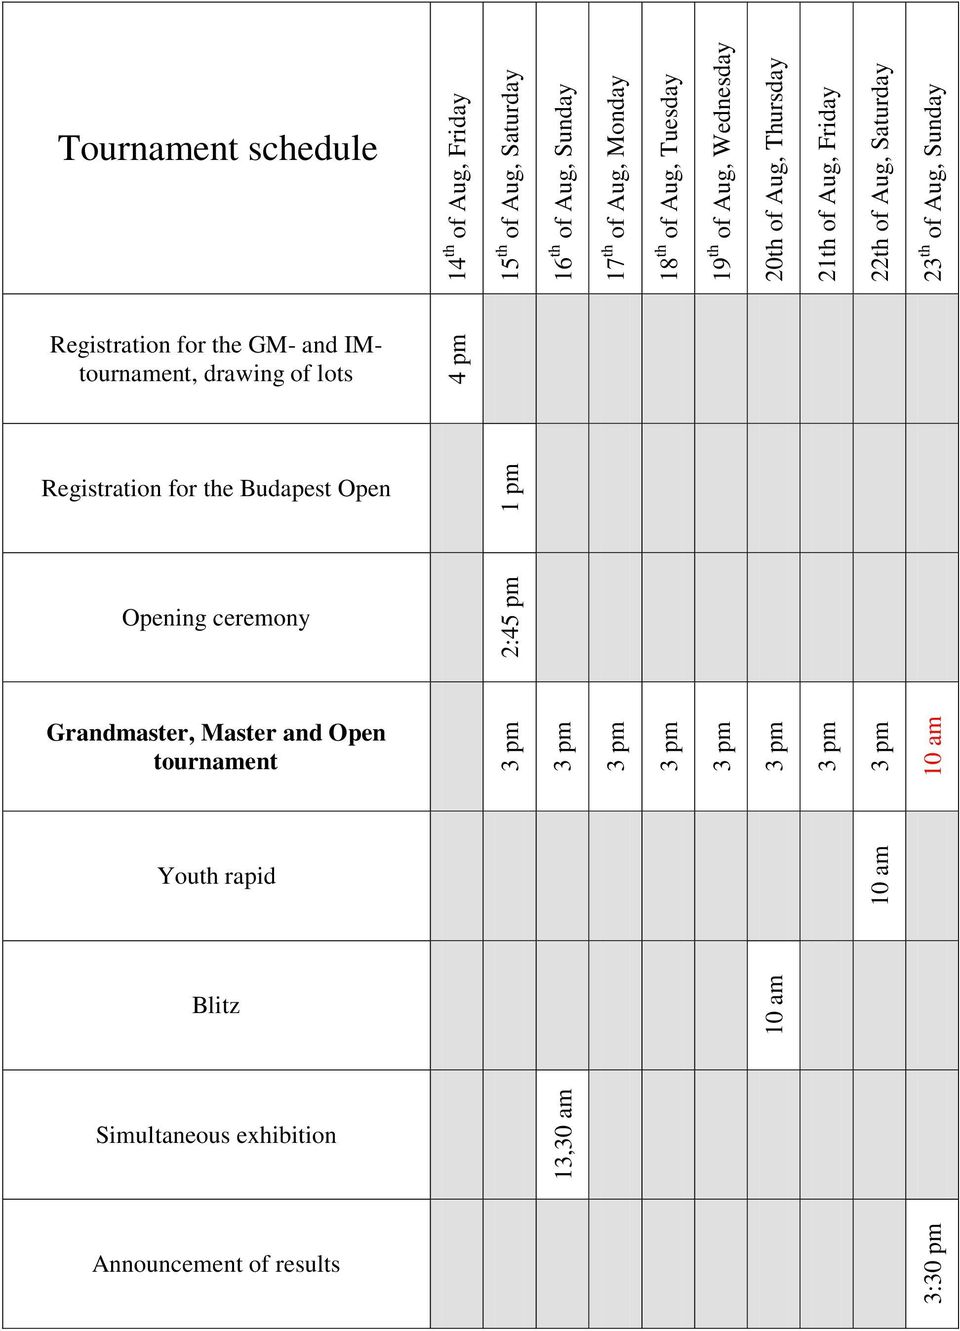 th of Aug, Sunday Tournament schedule Registration for the GM- and IMtournament, drawing of lots Registration for the Budapest